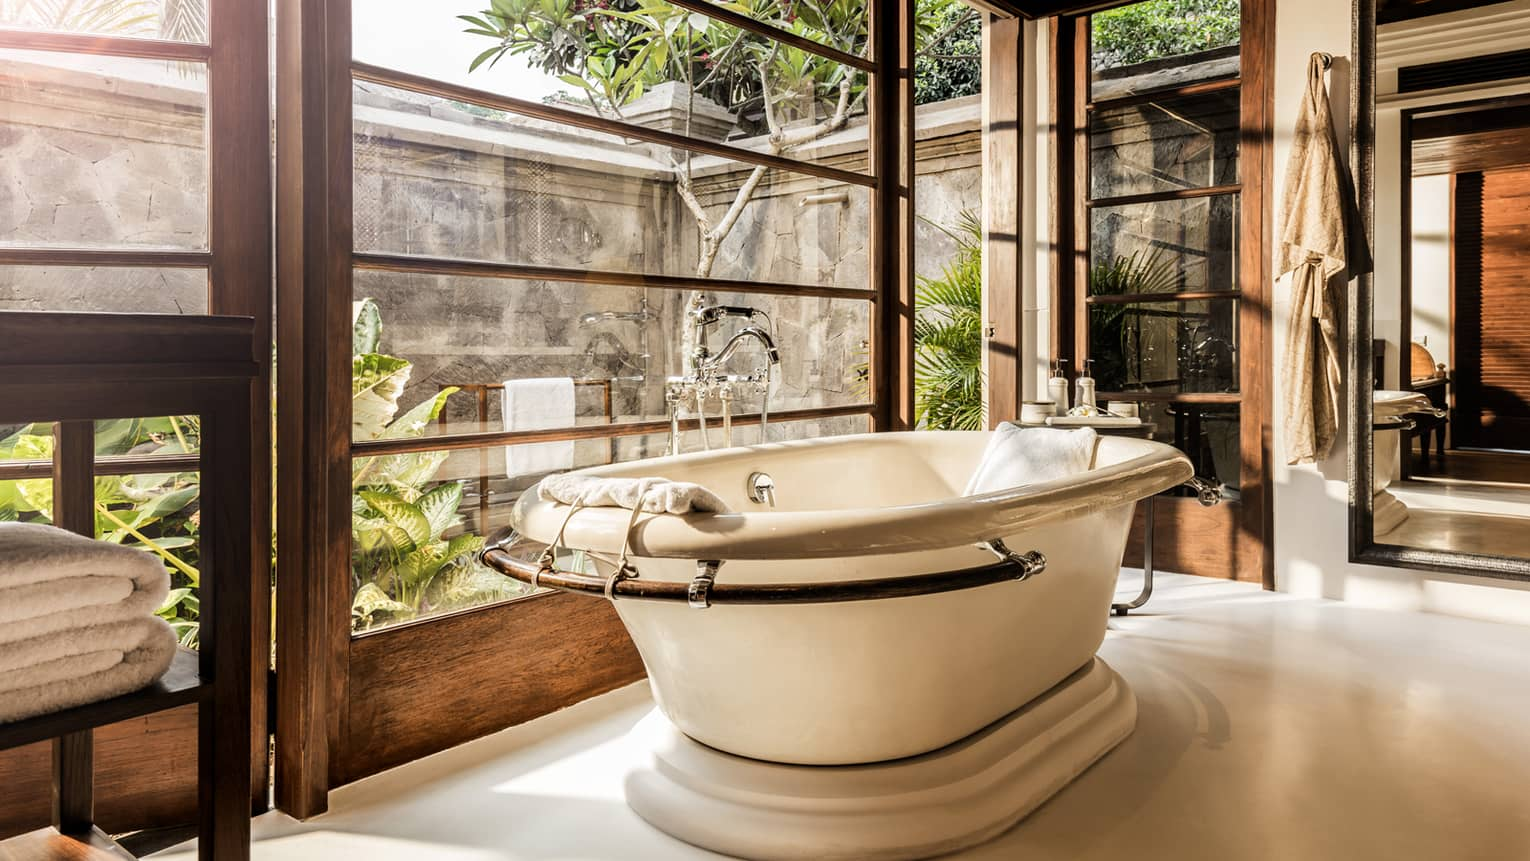 Free-standing bath tub with folded white towels, bathrobe hanging above, large window to garden